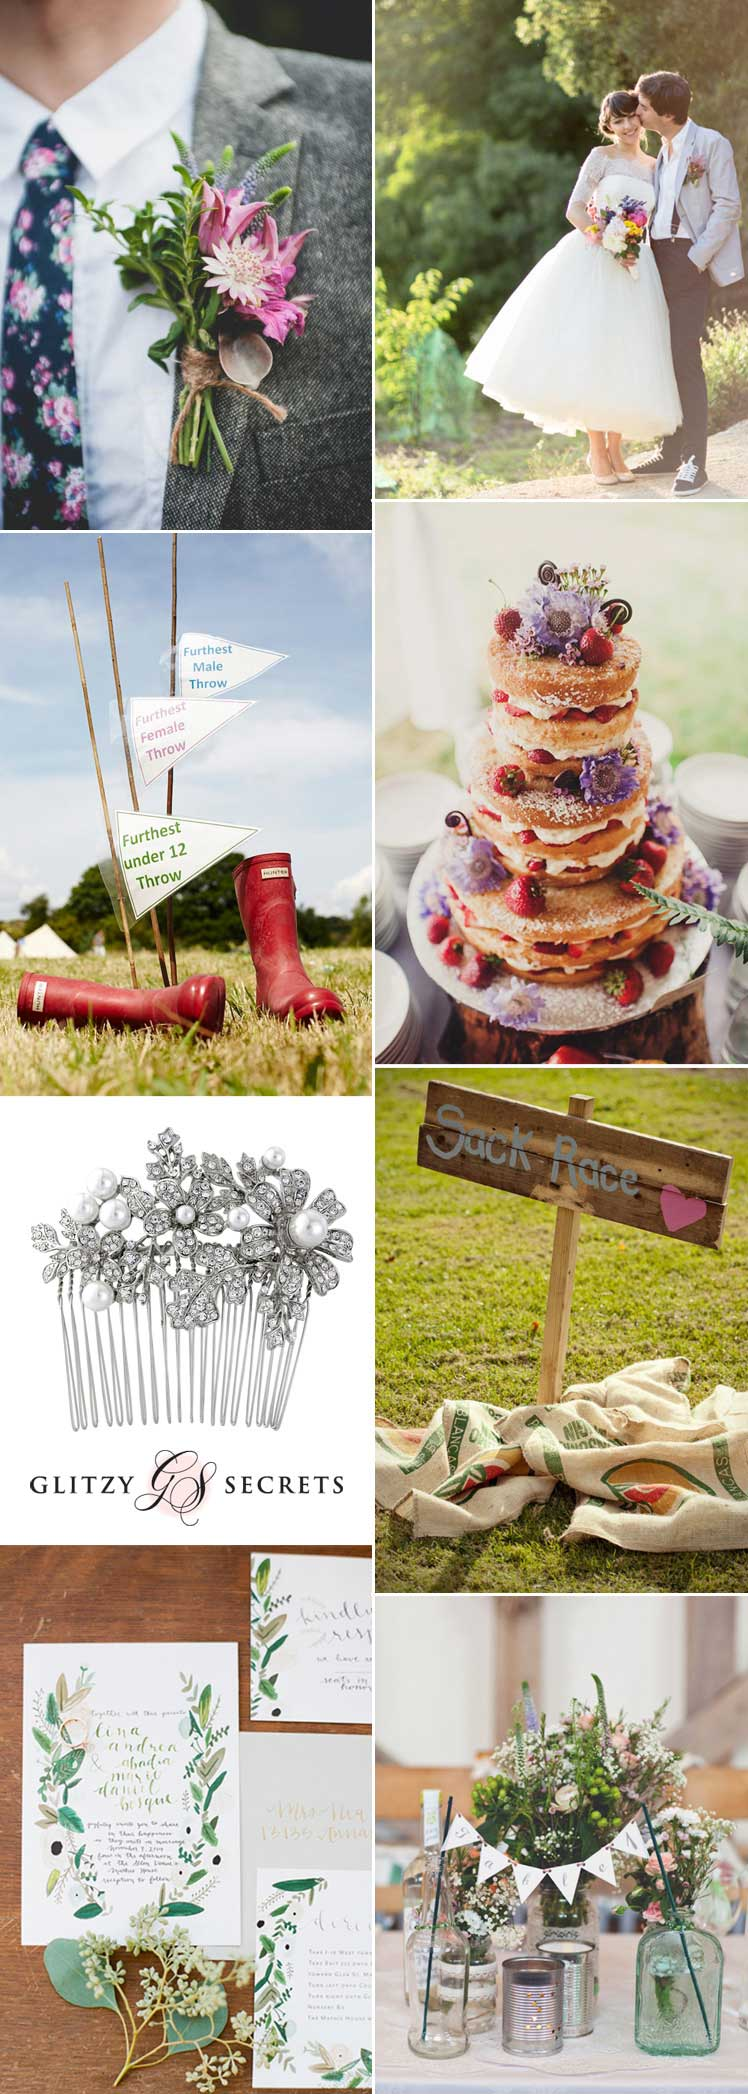 Village fete style ideas inspiration